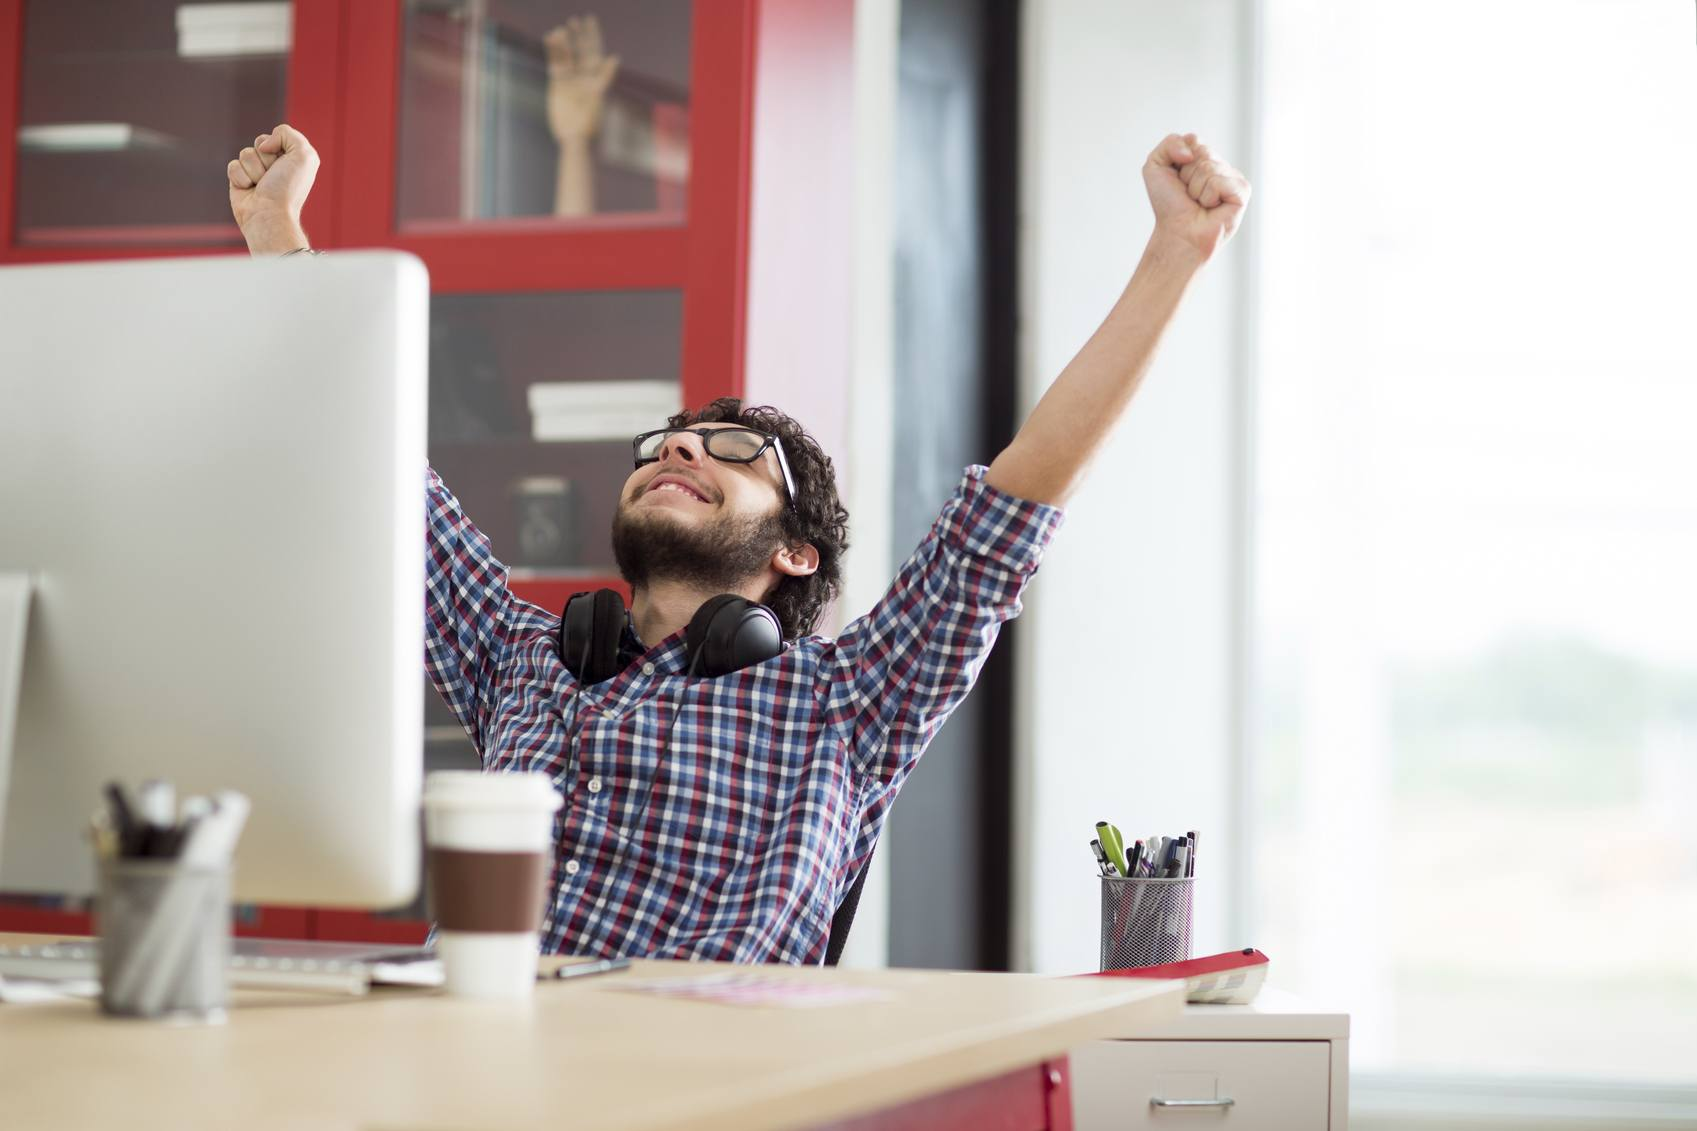 Enthusiastic worker celebrating success